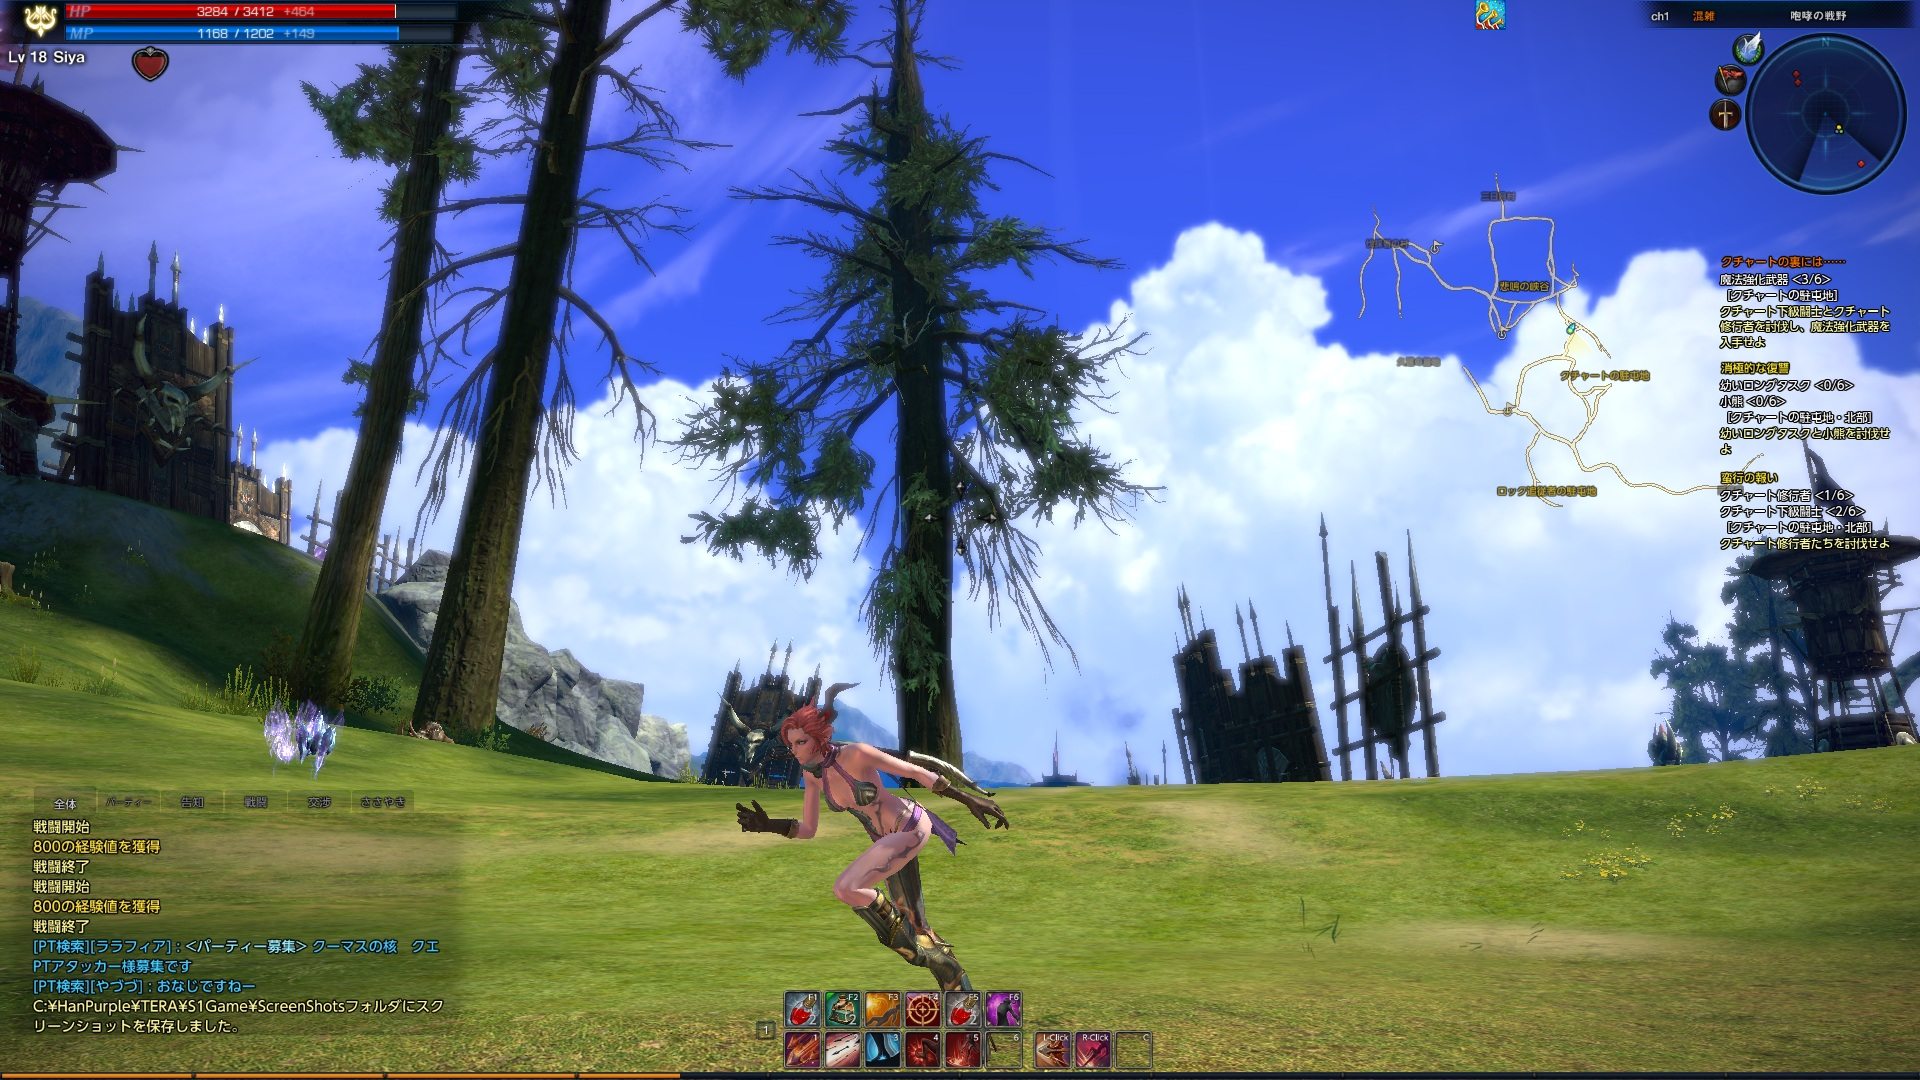 siya games opening gameplay trailer experience preview online media removed heres tera